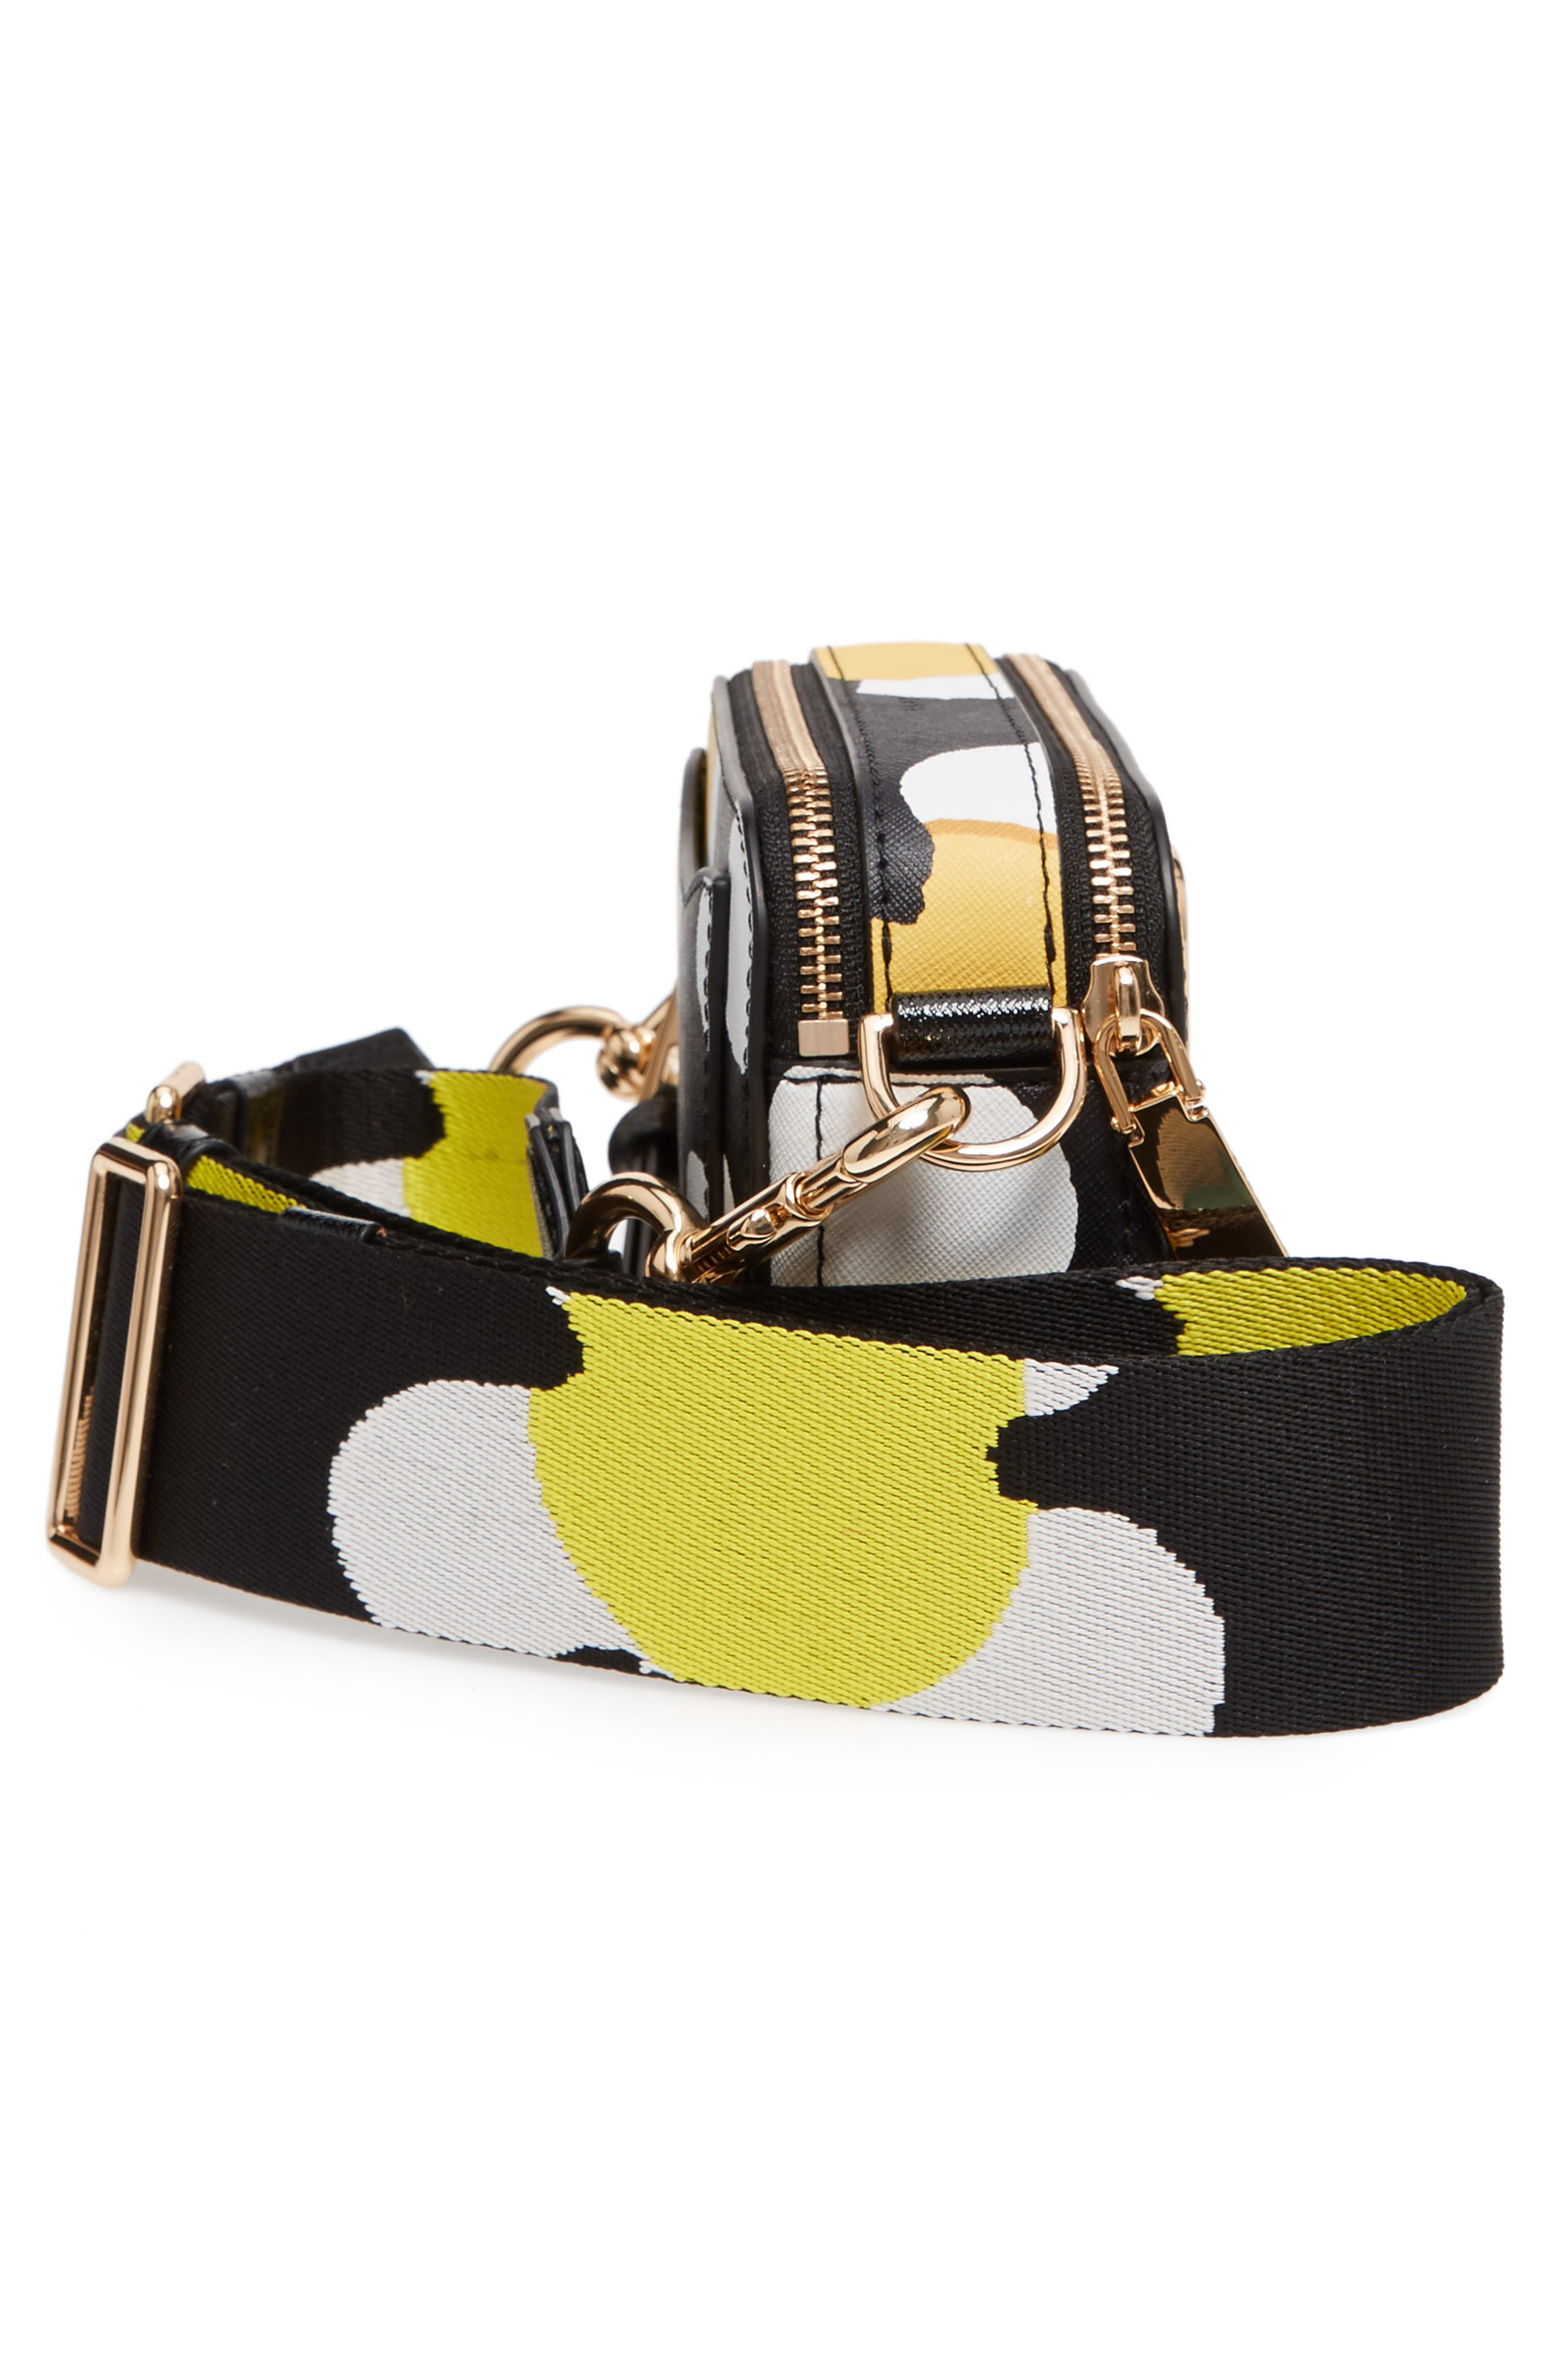 Snapshot Daisy Print Leather Crossbody Bag,                             Alternate thumbnail 5, color,                             Yellow Multi